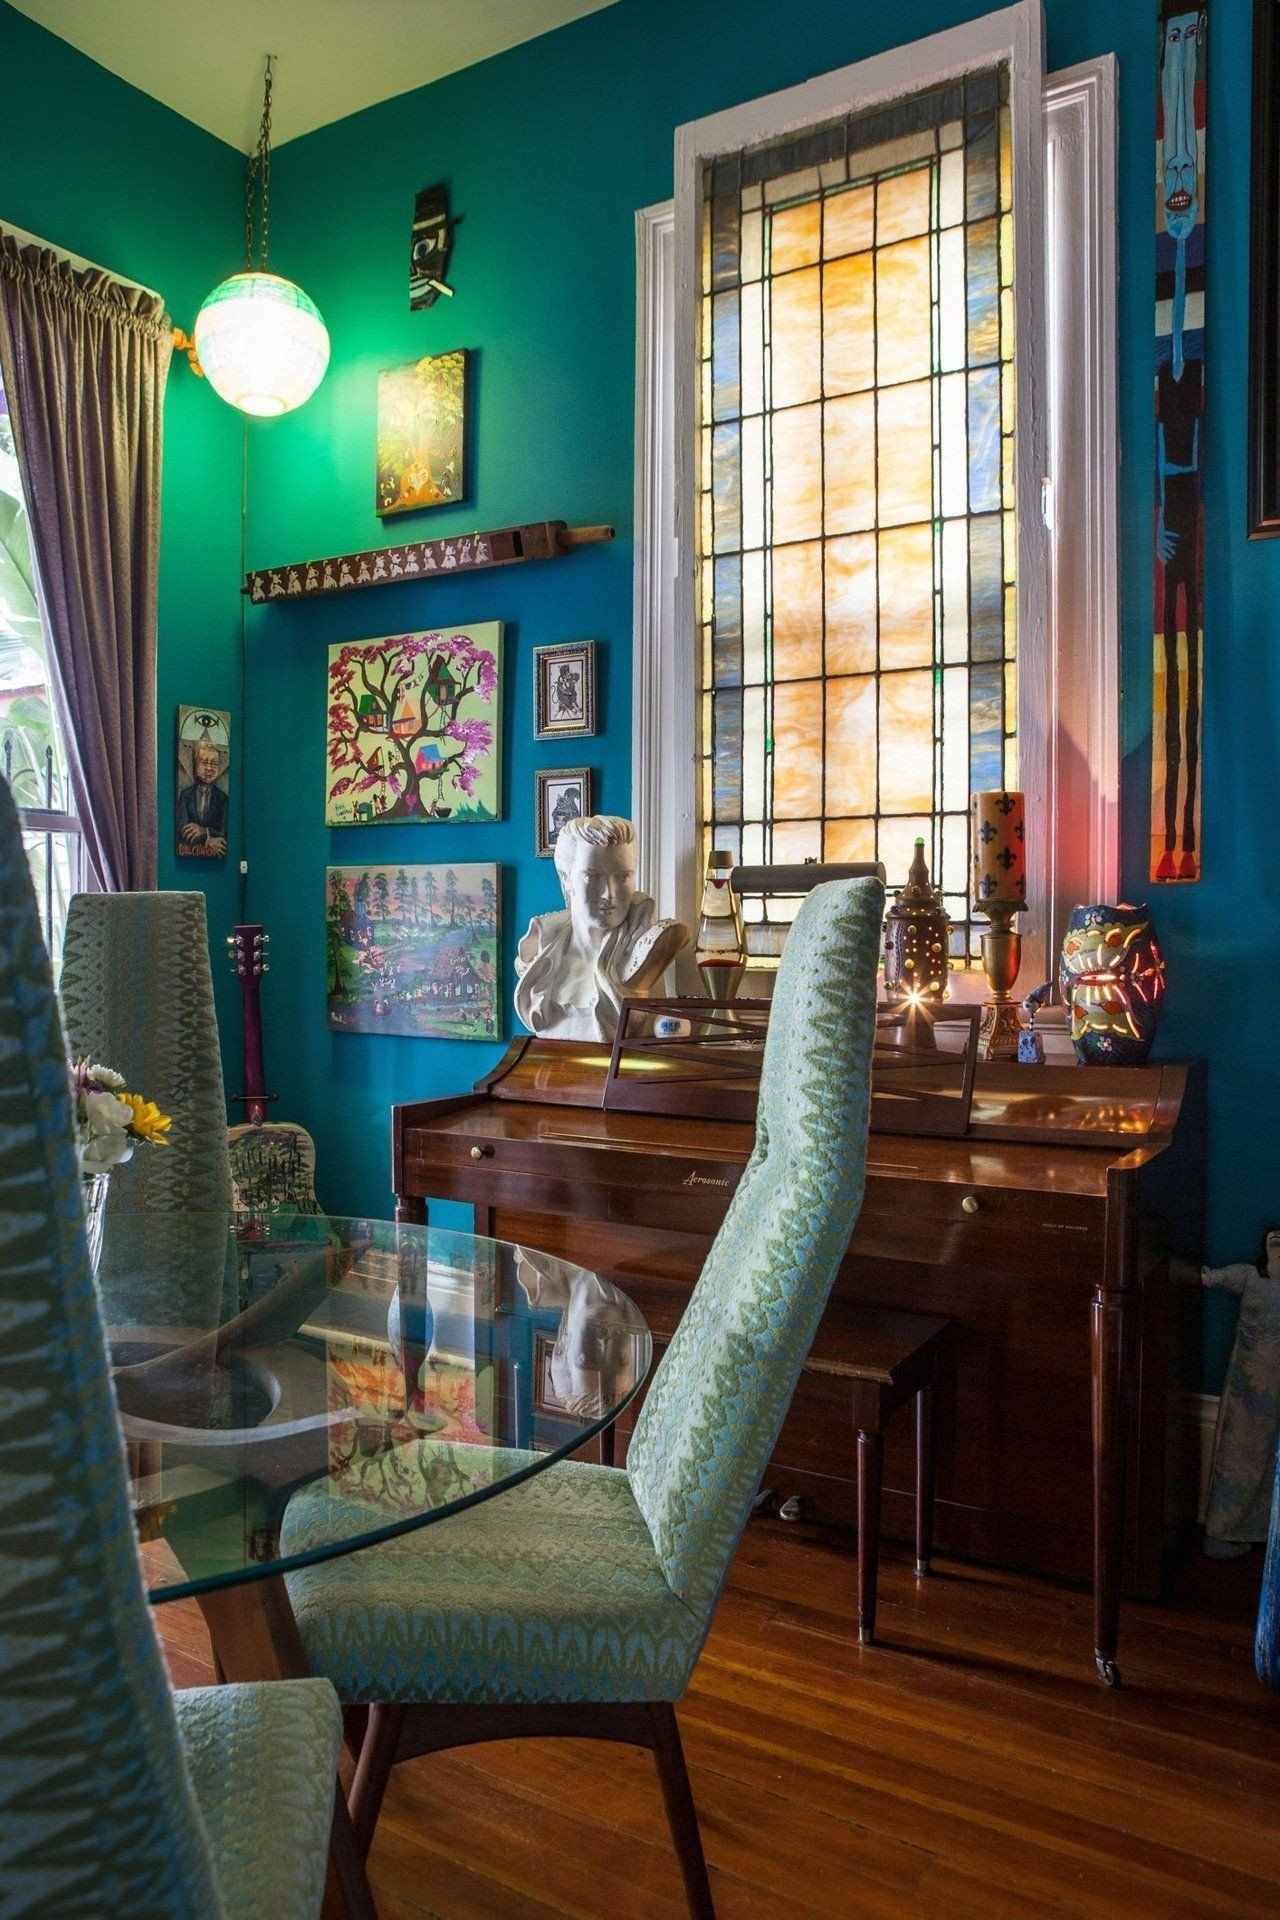 New orleans Style Home Decor Beautiful A Vibrant Colorful Art Filled New orleans Home Design Inspiration